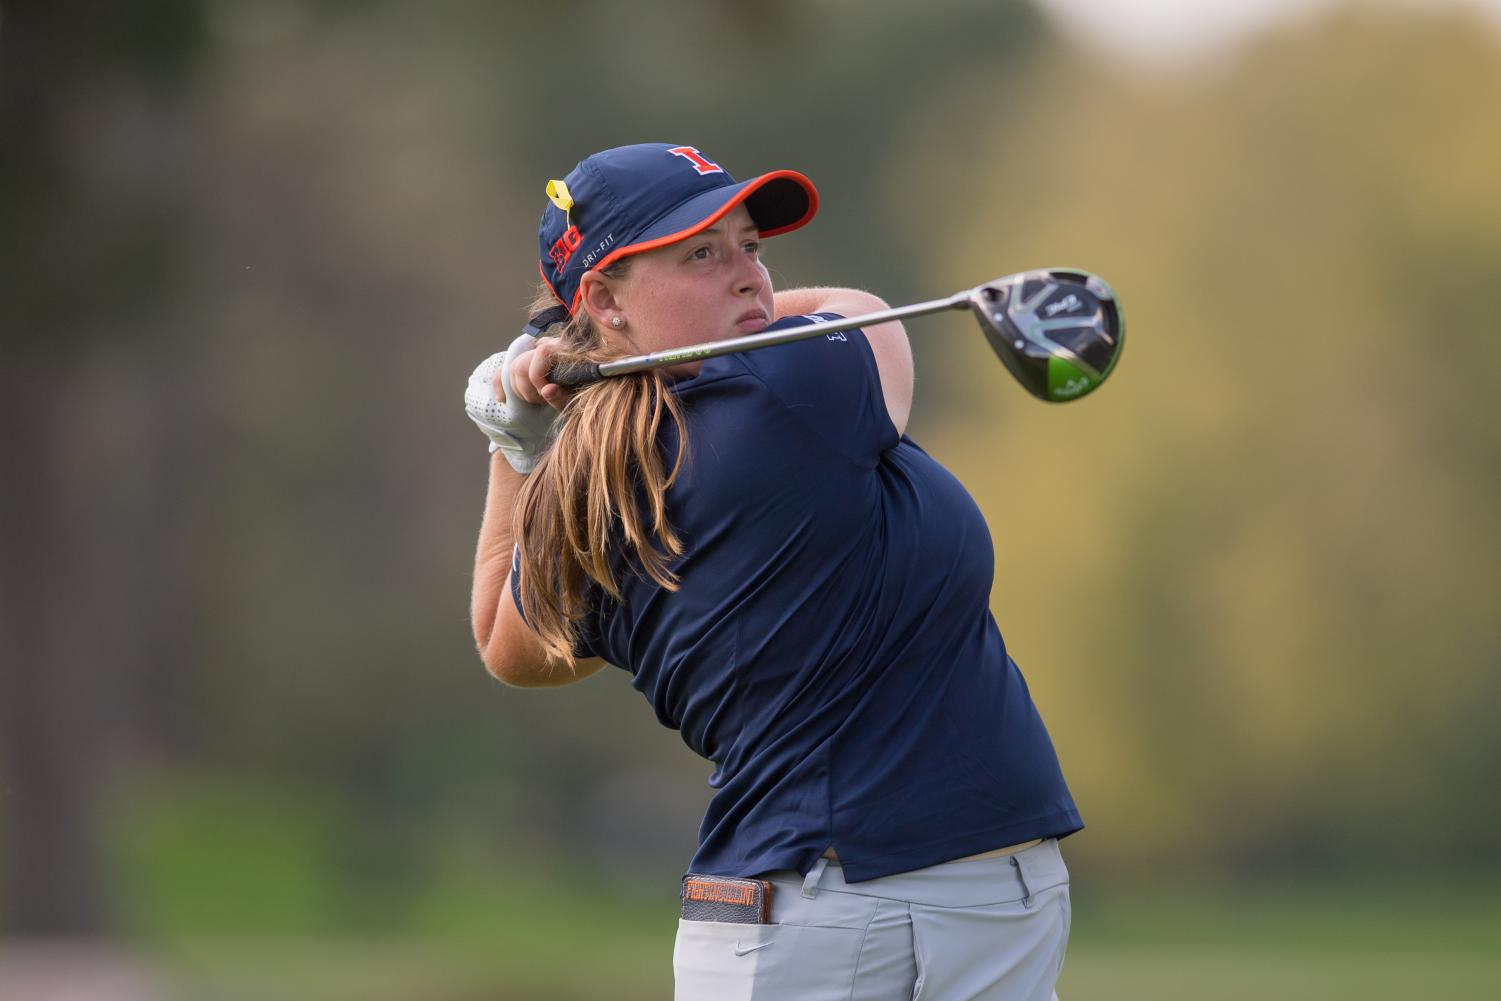 Junior Trystin Nowlin watches her drive at the Illinois Women's Invite in Medinah, Illinois, on Oct. 8. Nowlin helped pace the Illini to a record-breaking performance in their last meet.